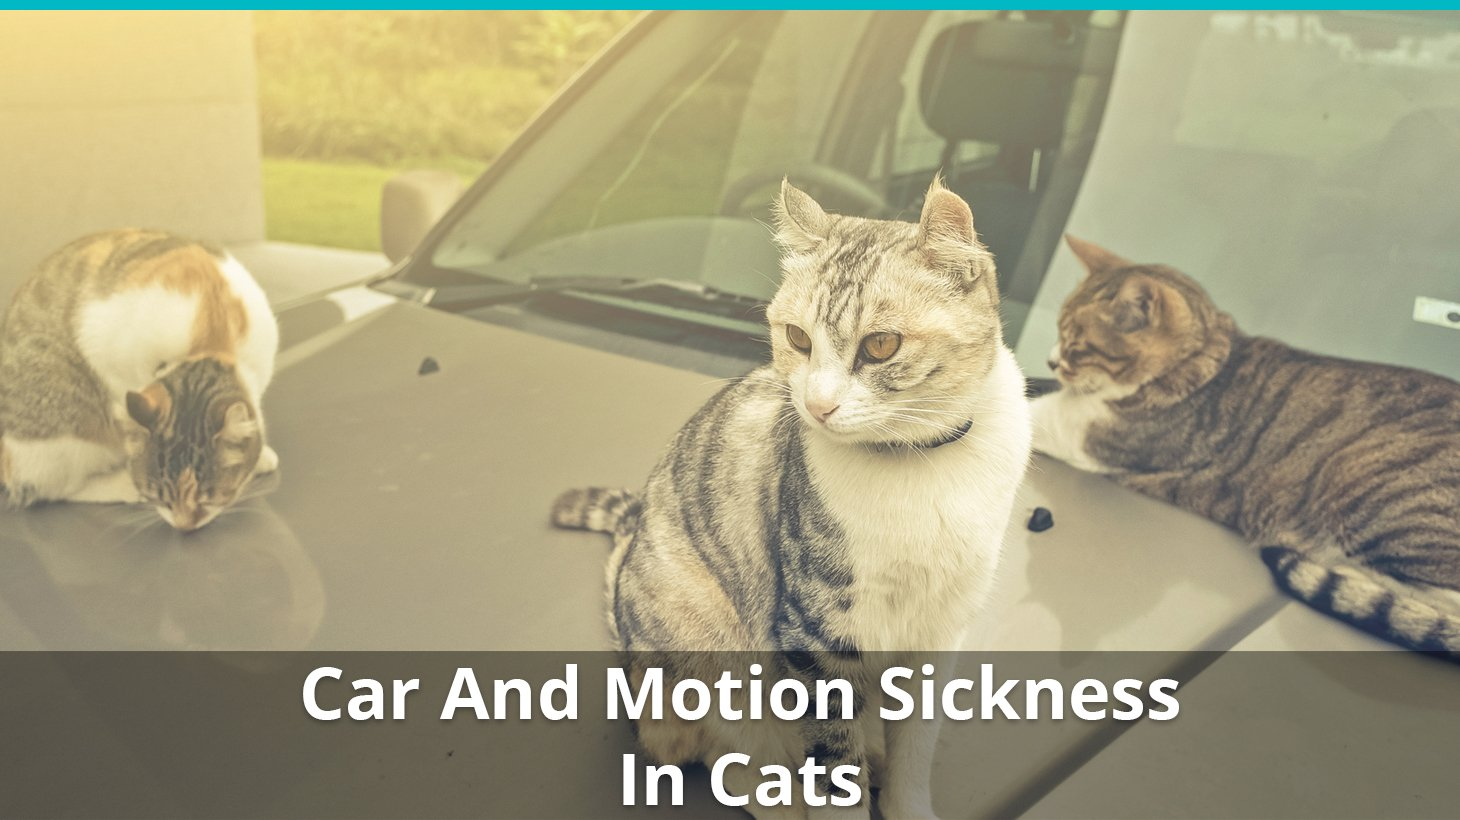 Car And Motion Sickness In Cats: How To Prevent And Treat It